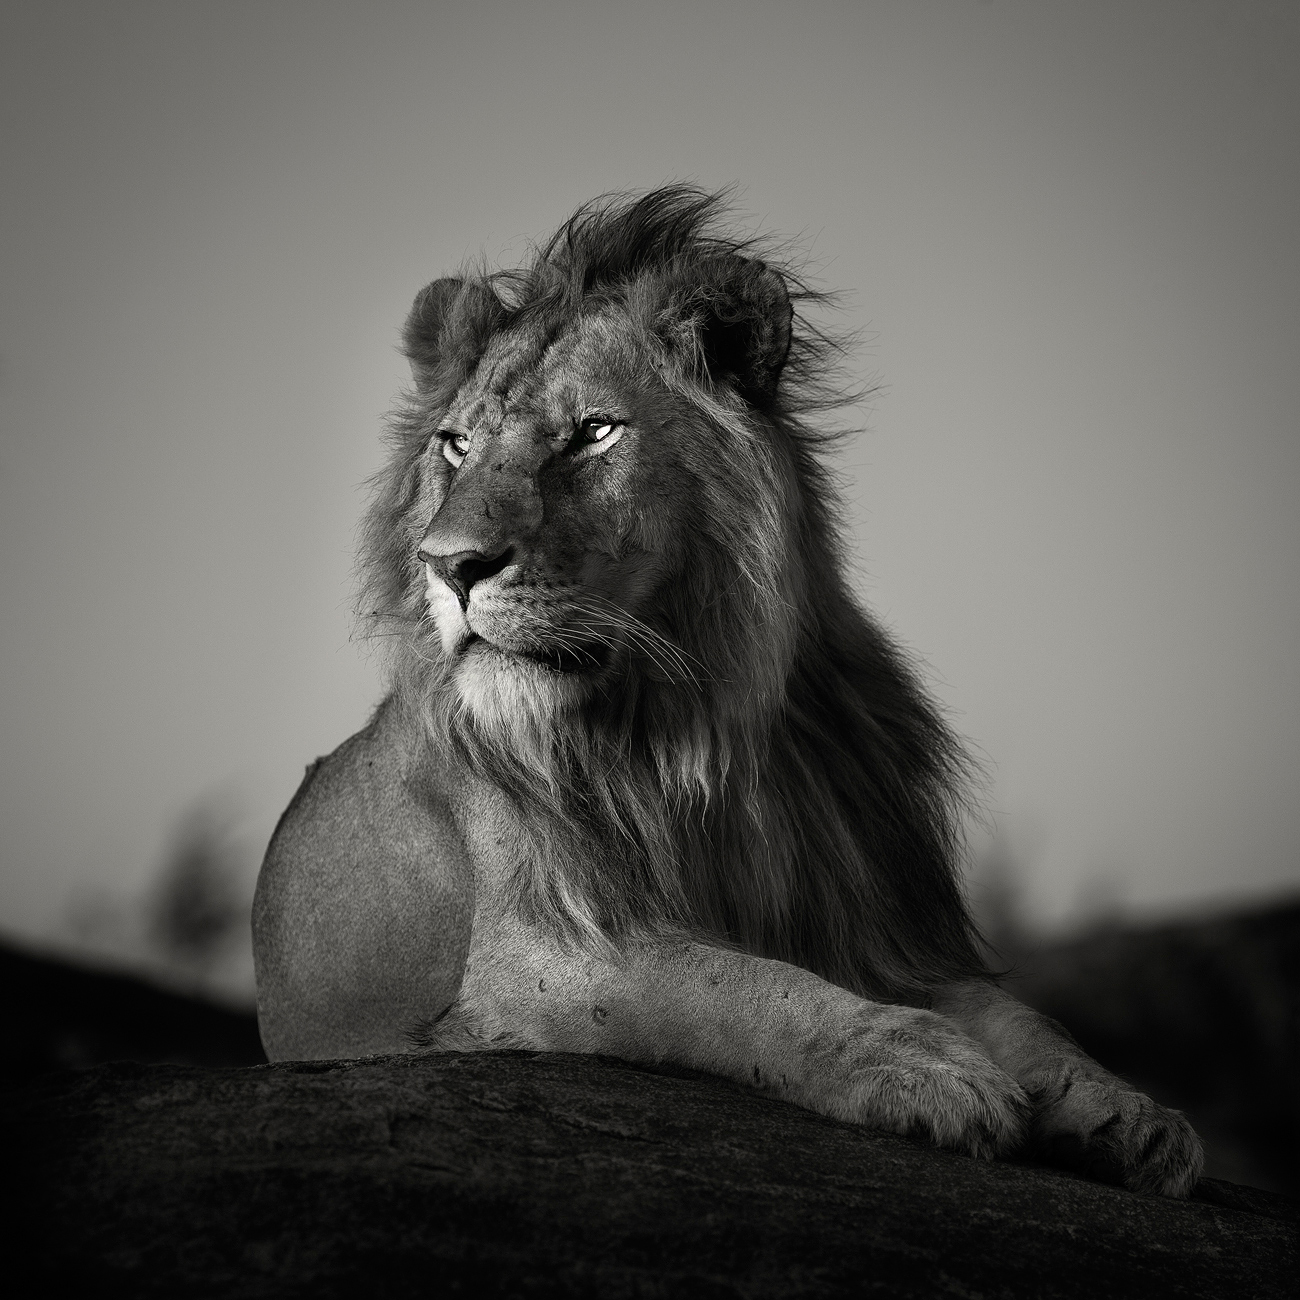 Nomad lion photography by pekka jarventaus